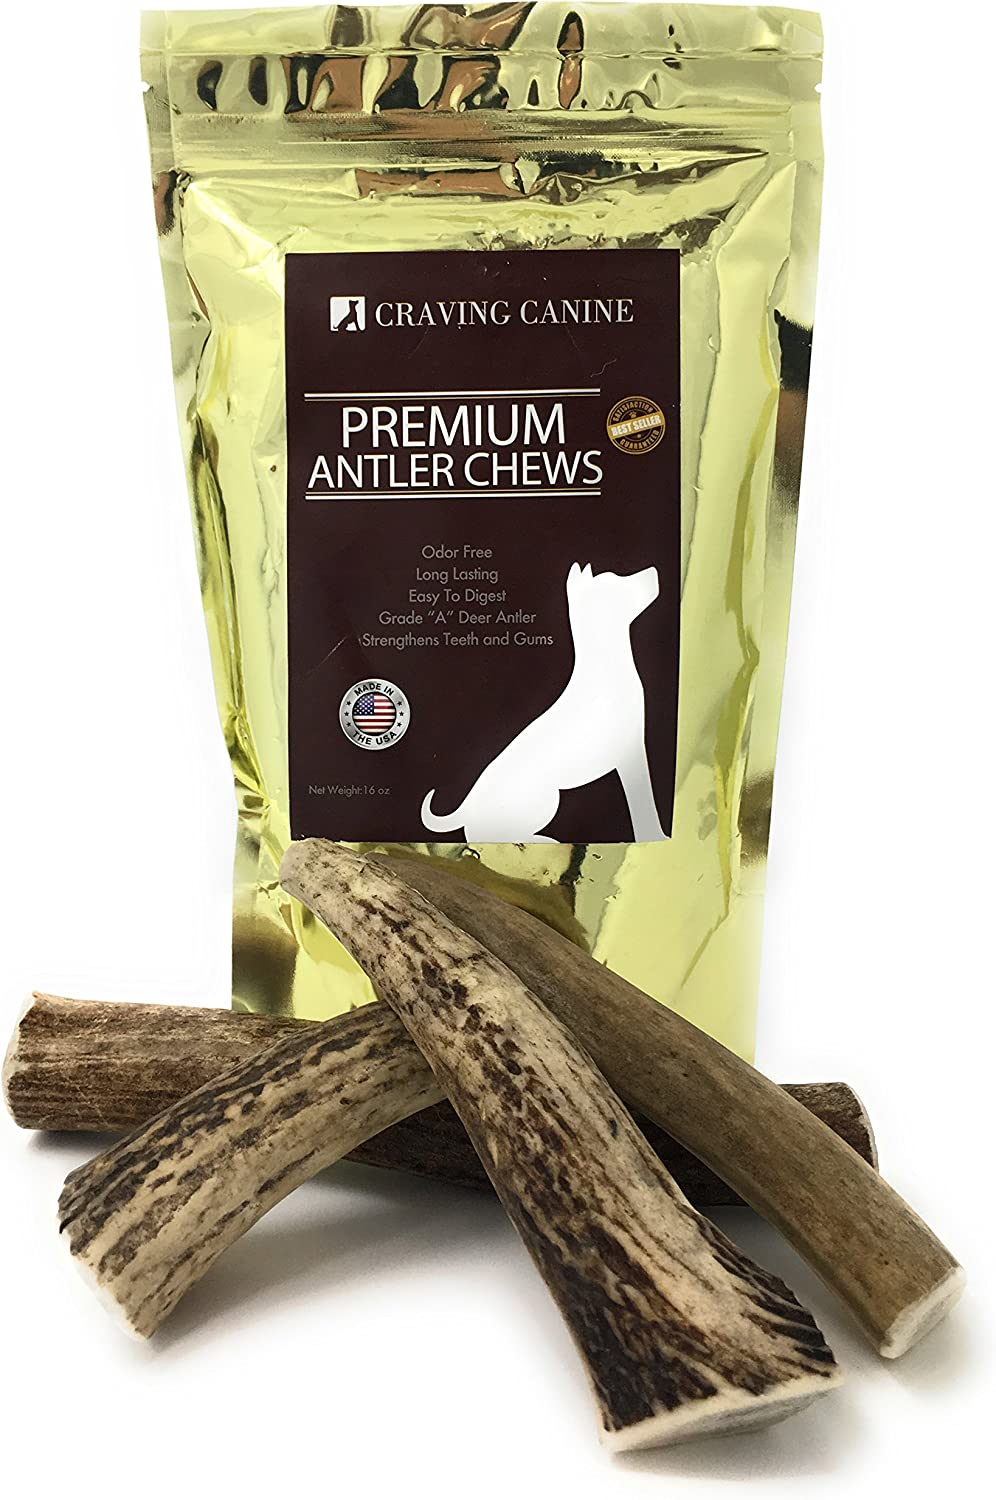 Craving Canine Grade A USA Deer Antlers for Dogs Odorless, Split-Resistant Horns for Aggressive Chewers Long Lasting Easy to Digest Antler Full of Glucosamine for Healthy Joints 1 lbs